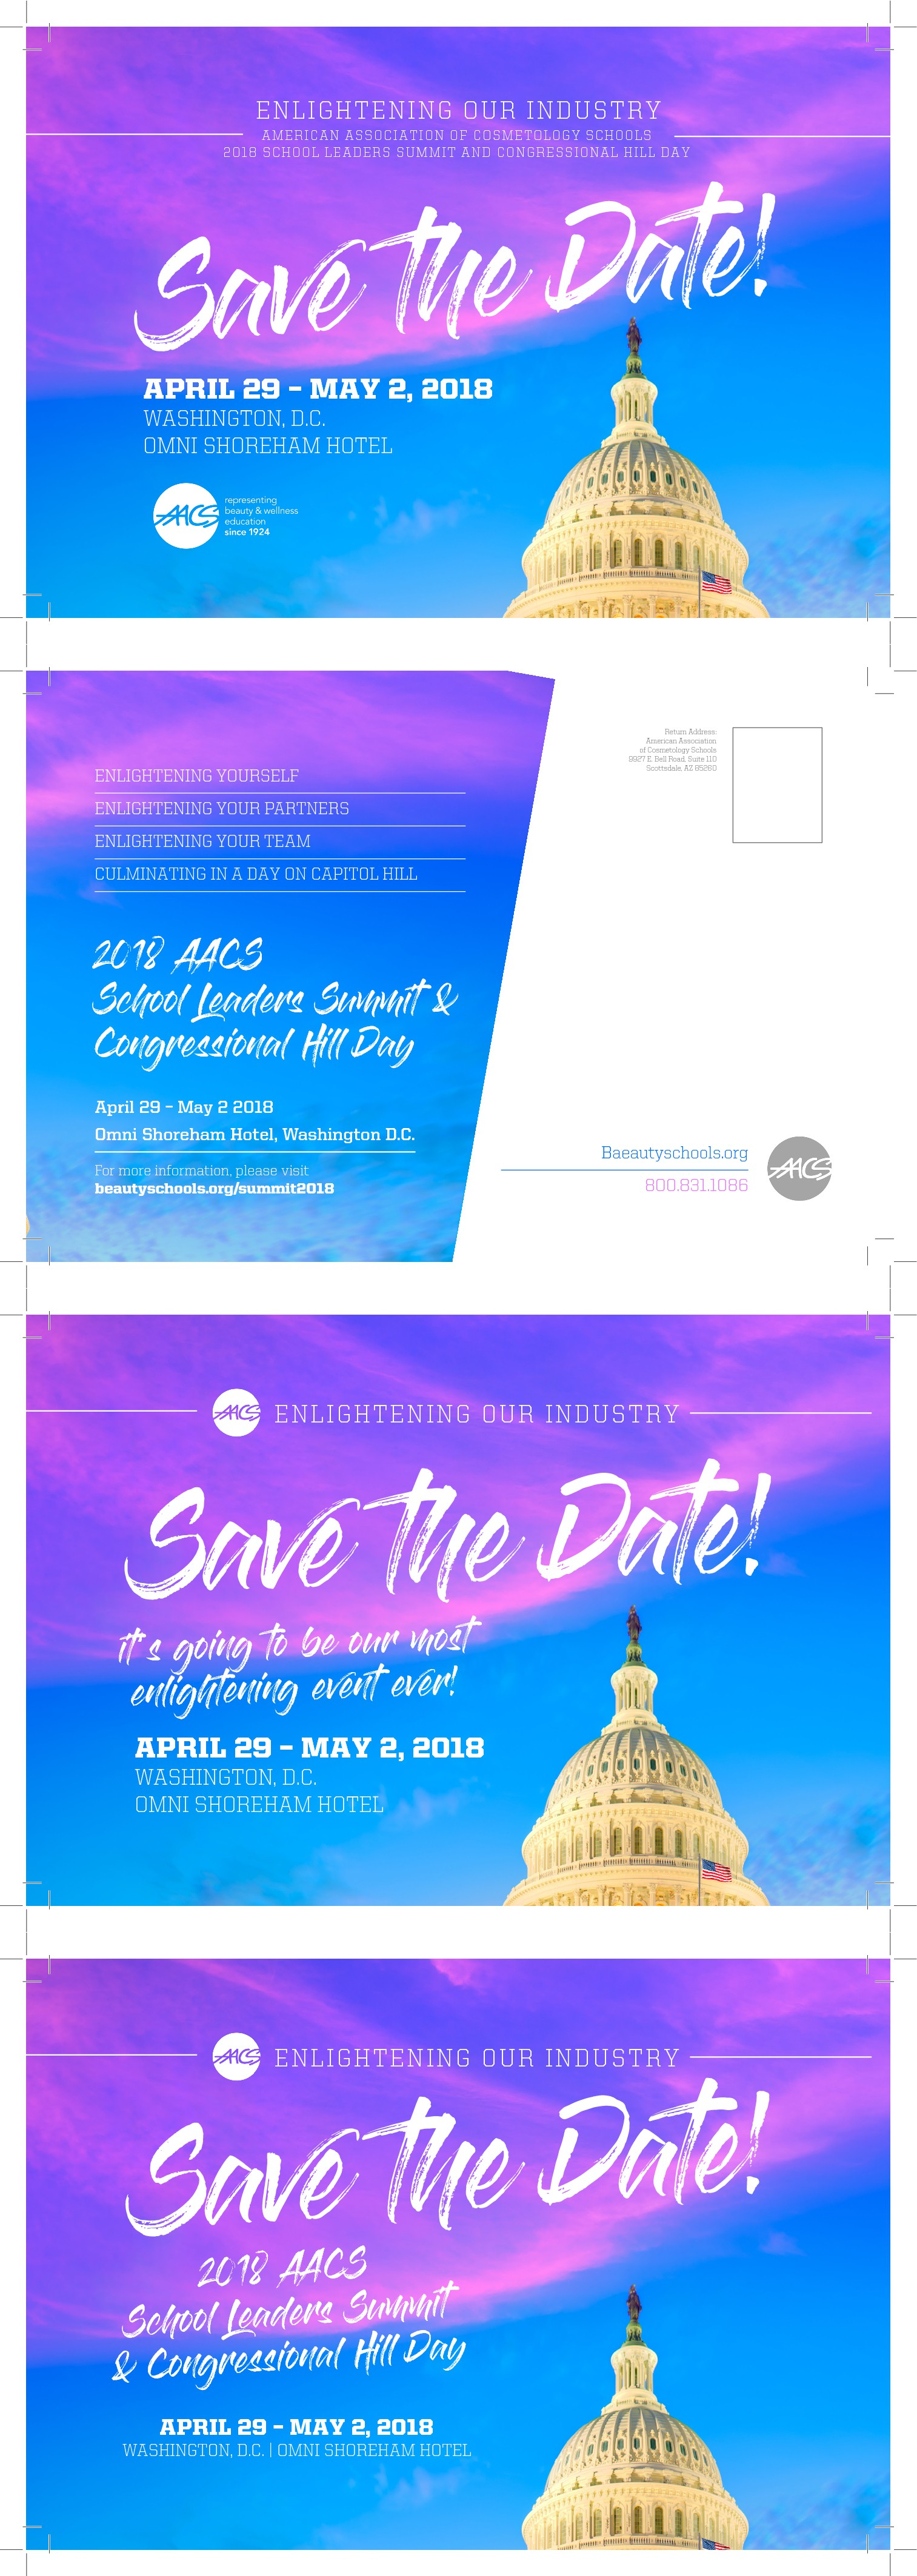 Design an epic Save the Date postcard for an Association meeting in D.C.